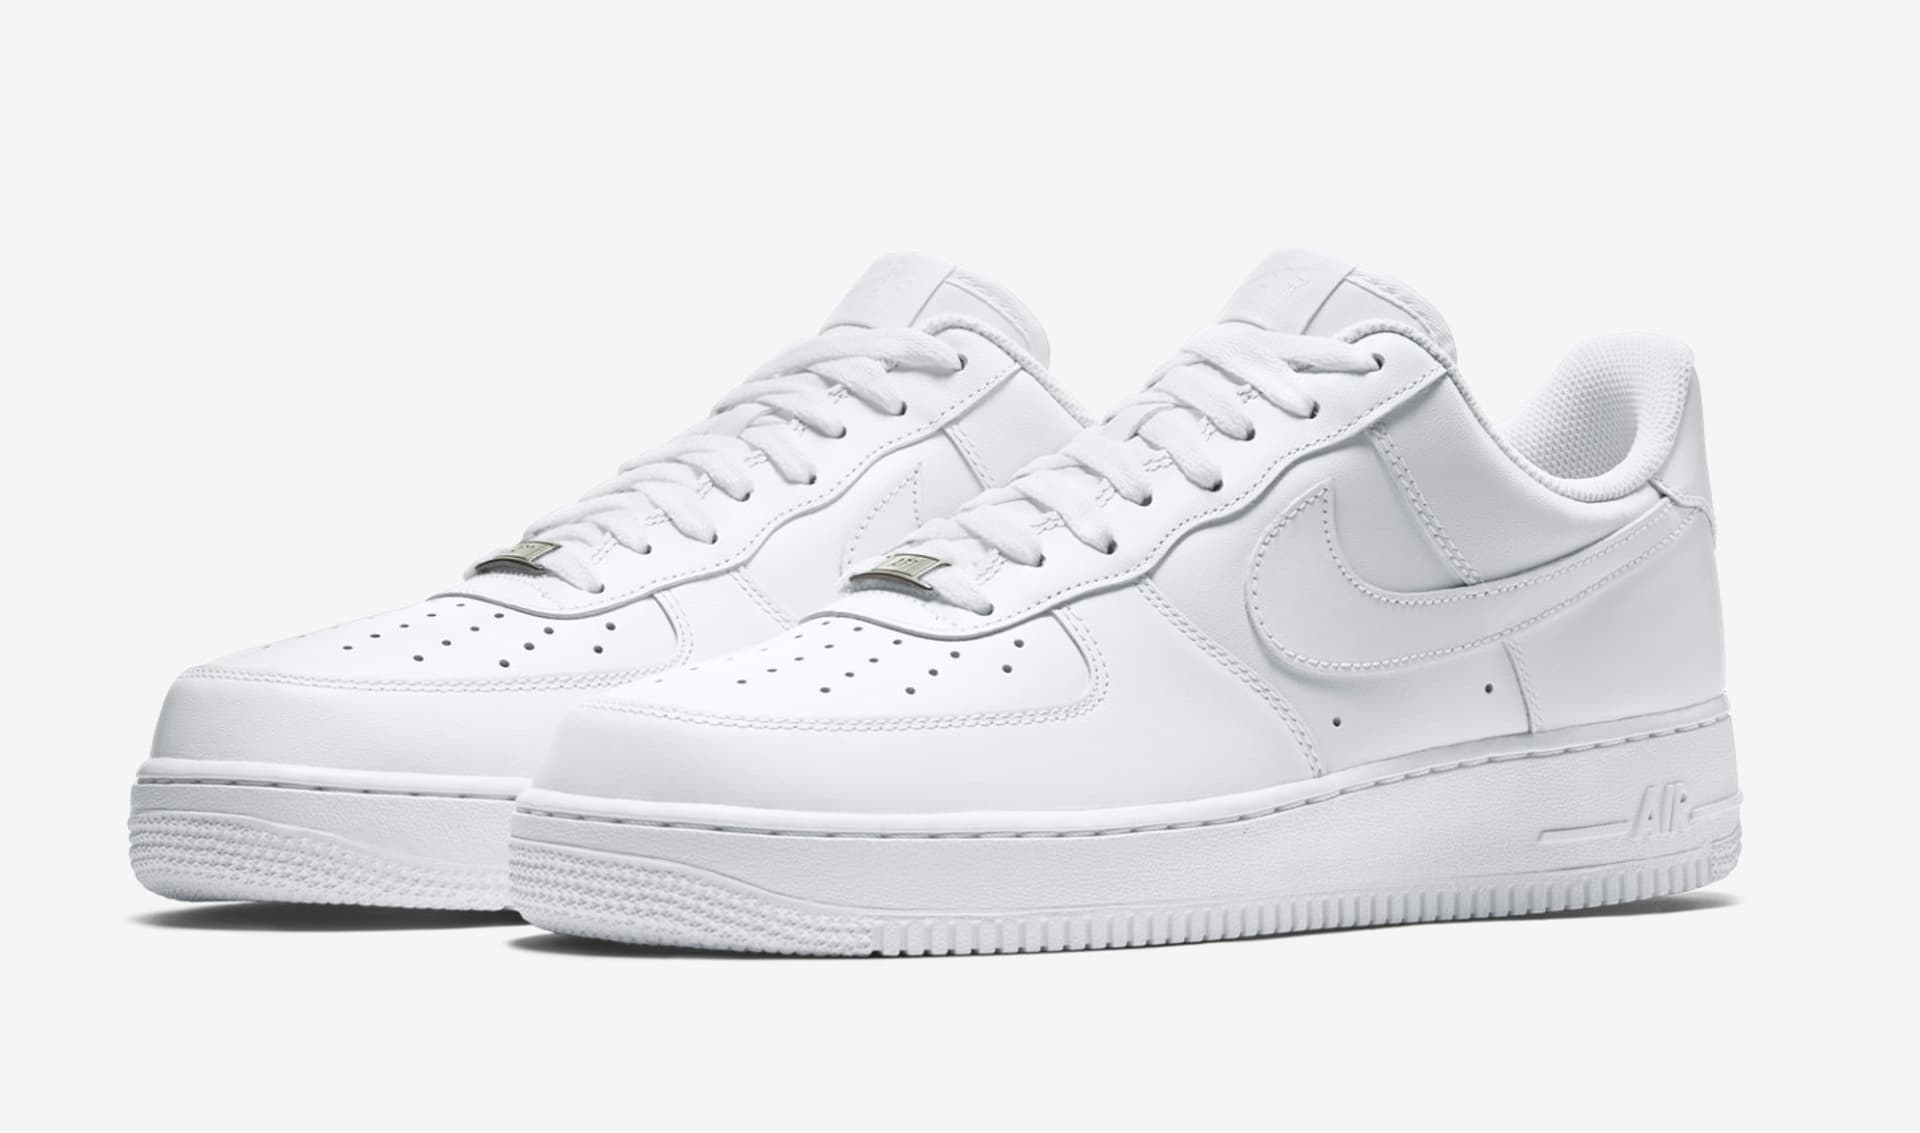 Another Nike Air Force 3 Low That Deserves Some Attention